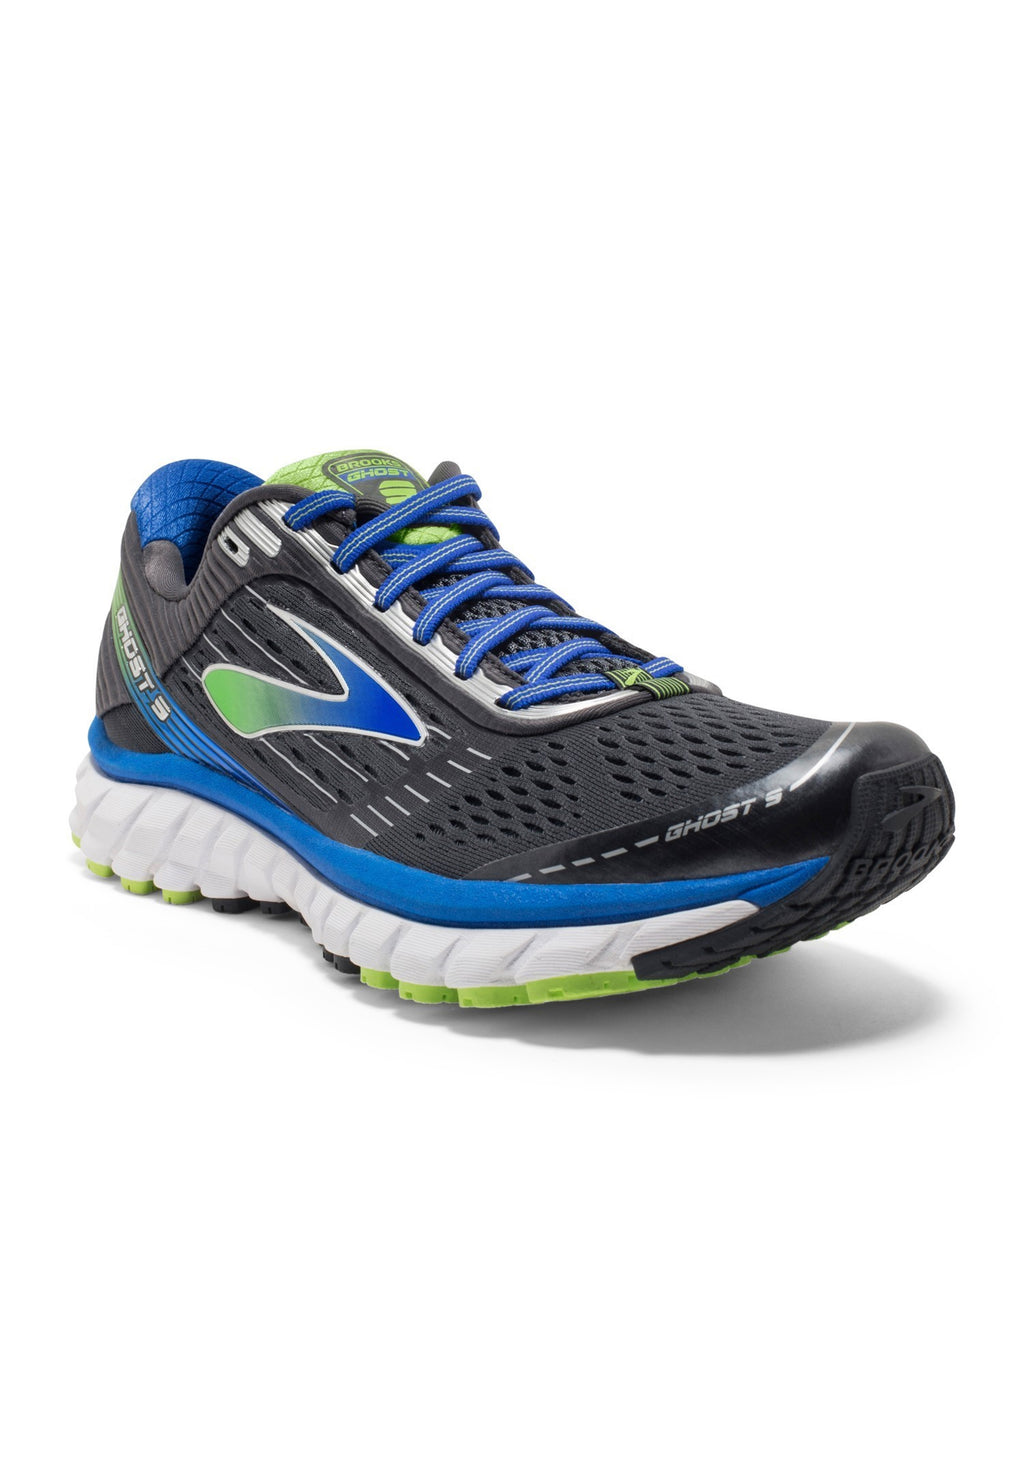 BROOKS GHOST 9 MENS <br> 110233 1D 060